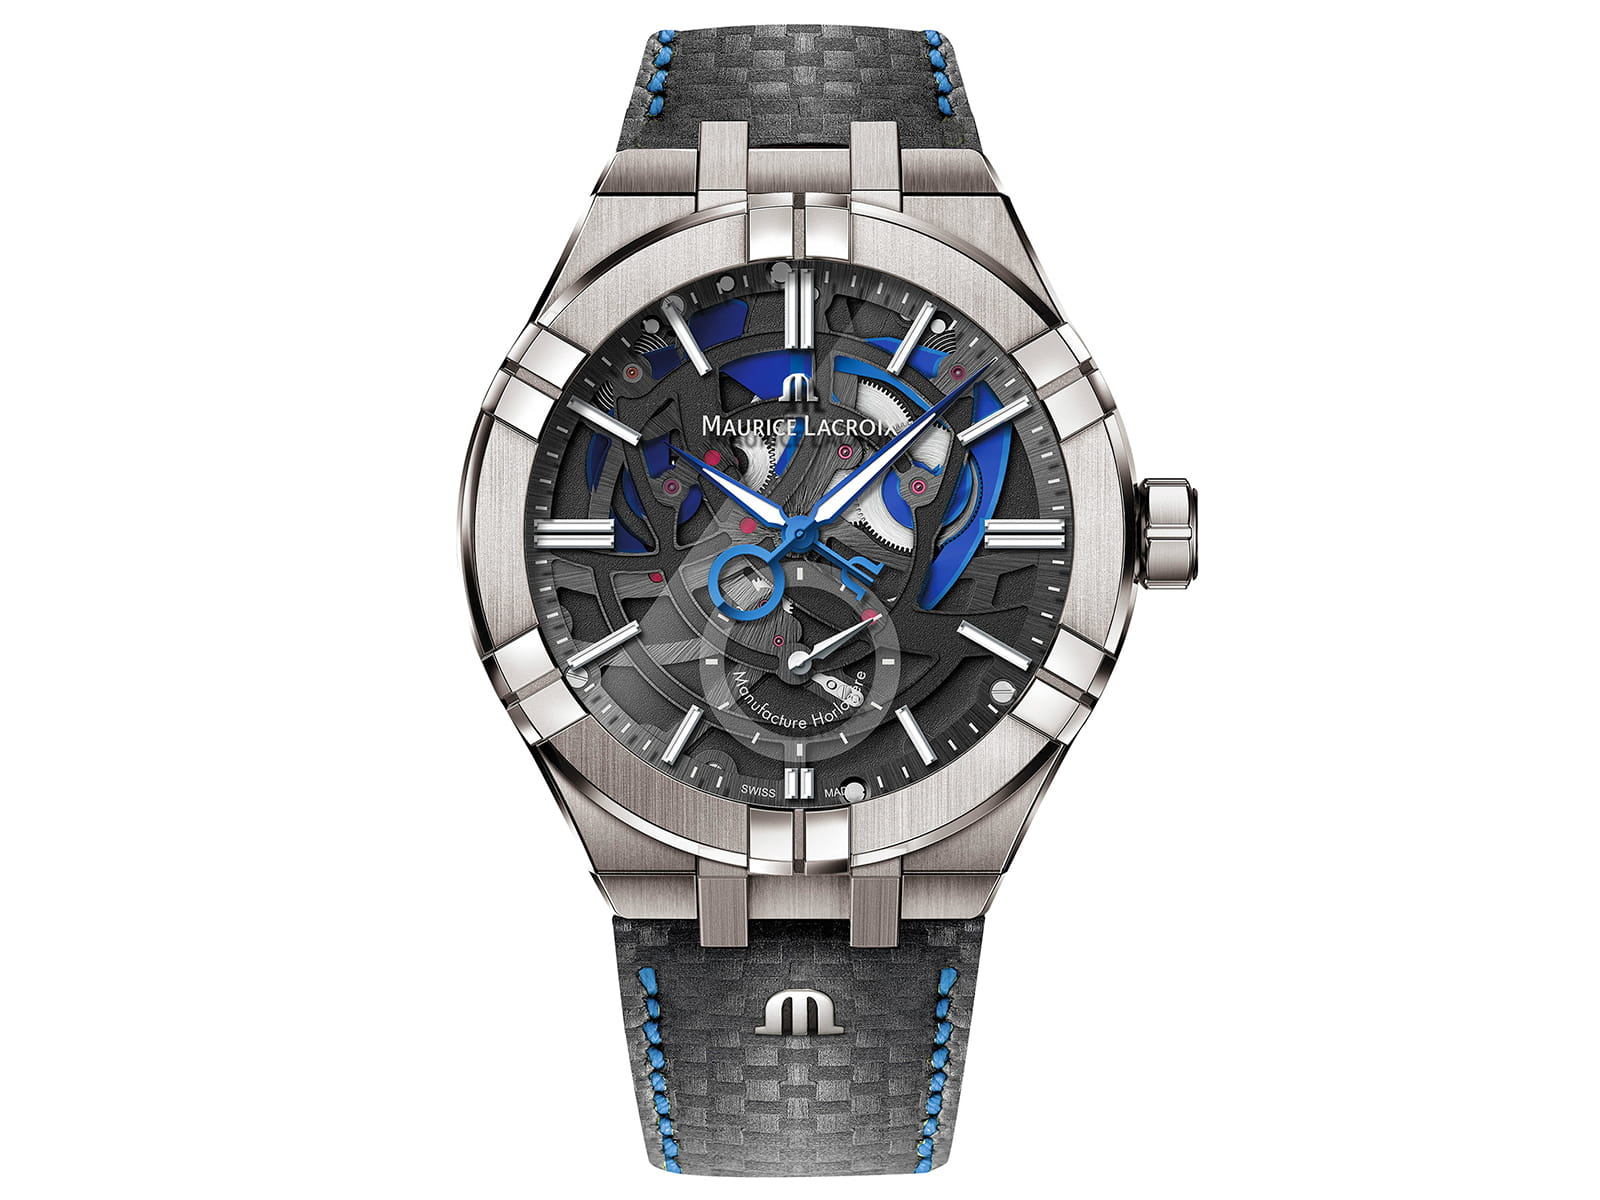 maurice-lacroix-aikon-mercury-only-watch-2019.jpg